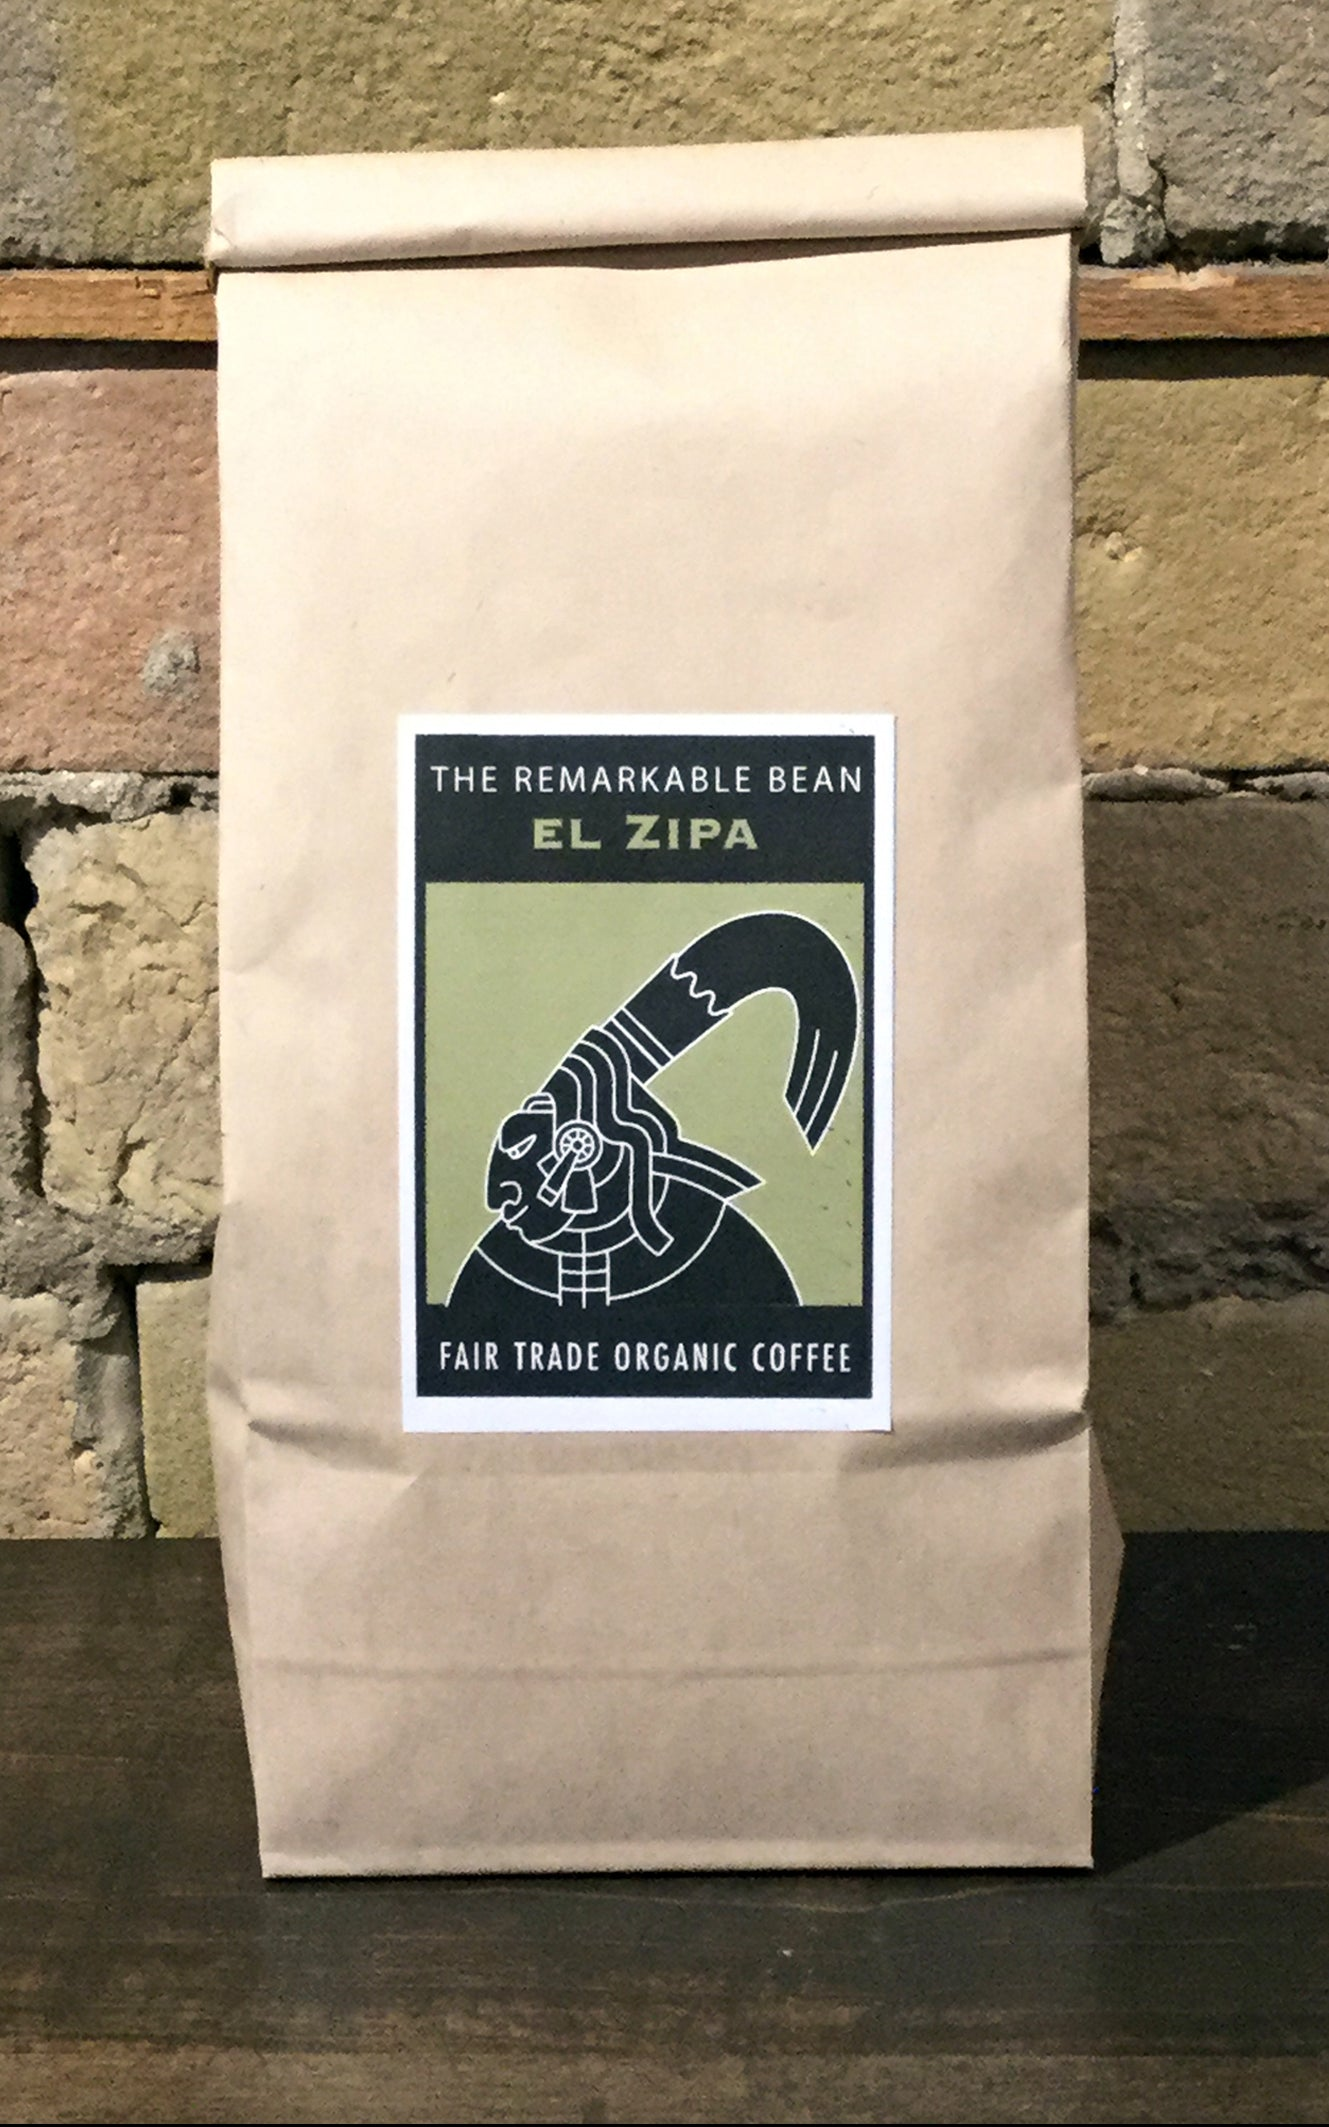 El Zipa Fair Trade Organic Coffee 454 grams